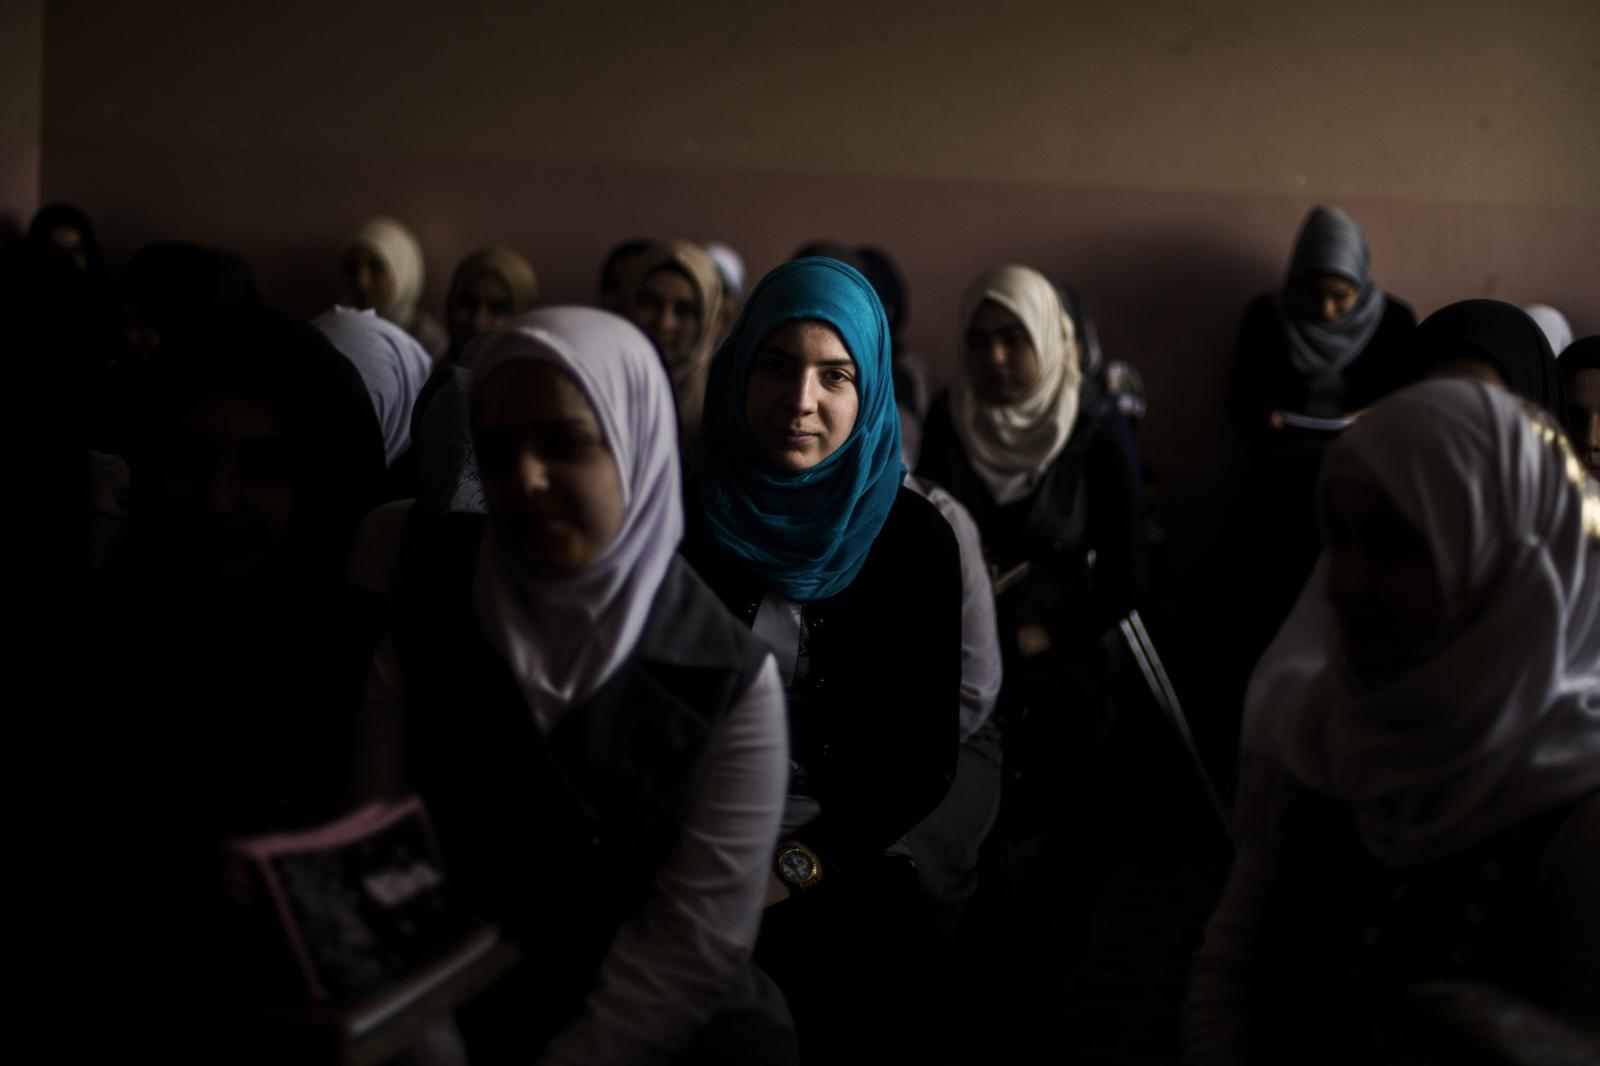 Photography image - Loading Education-IRAQ-CNN-02.jpg